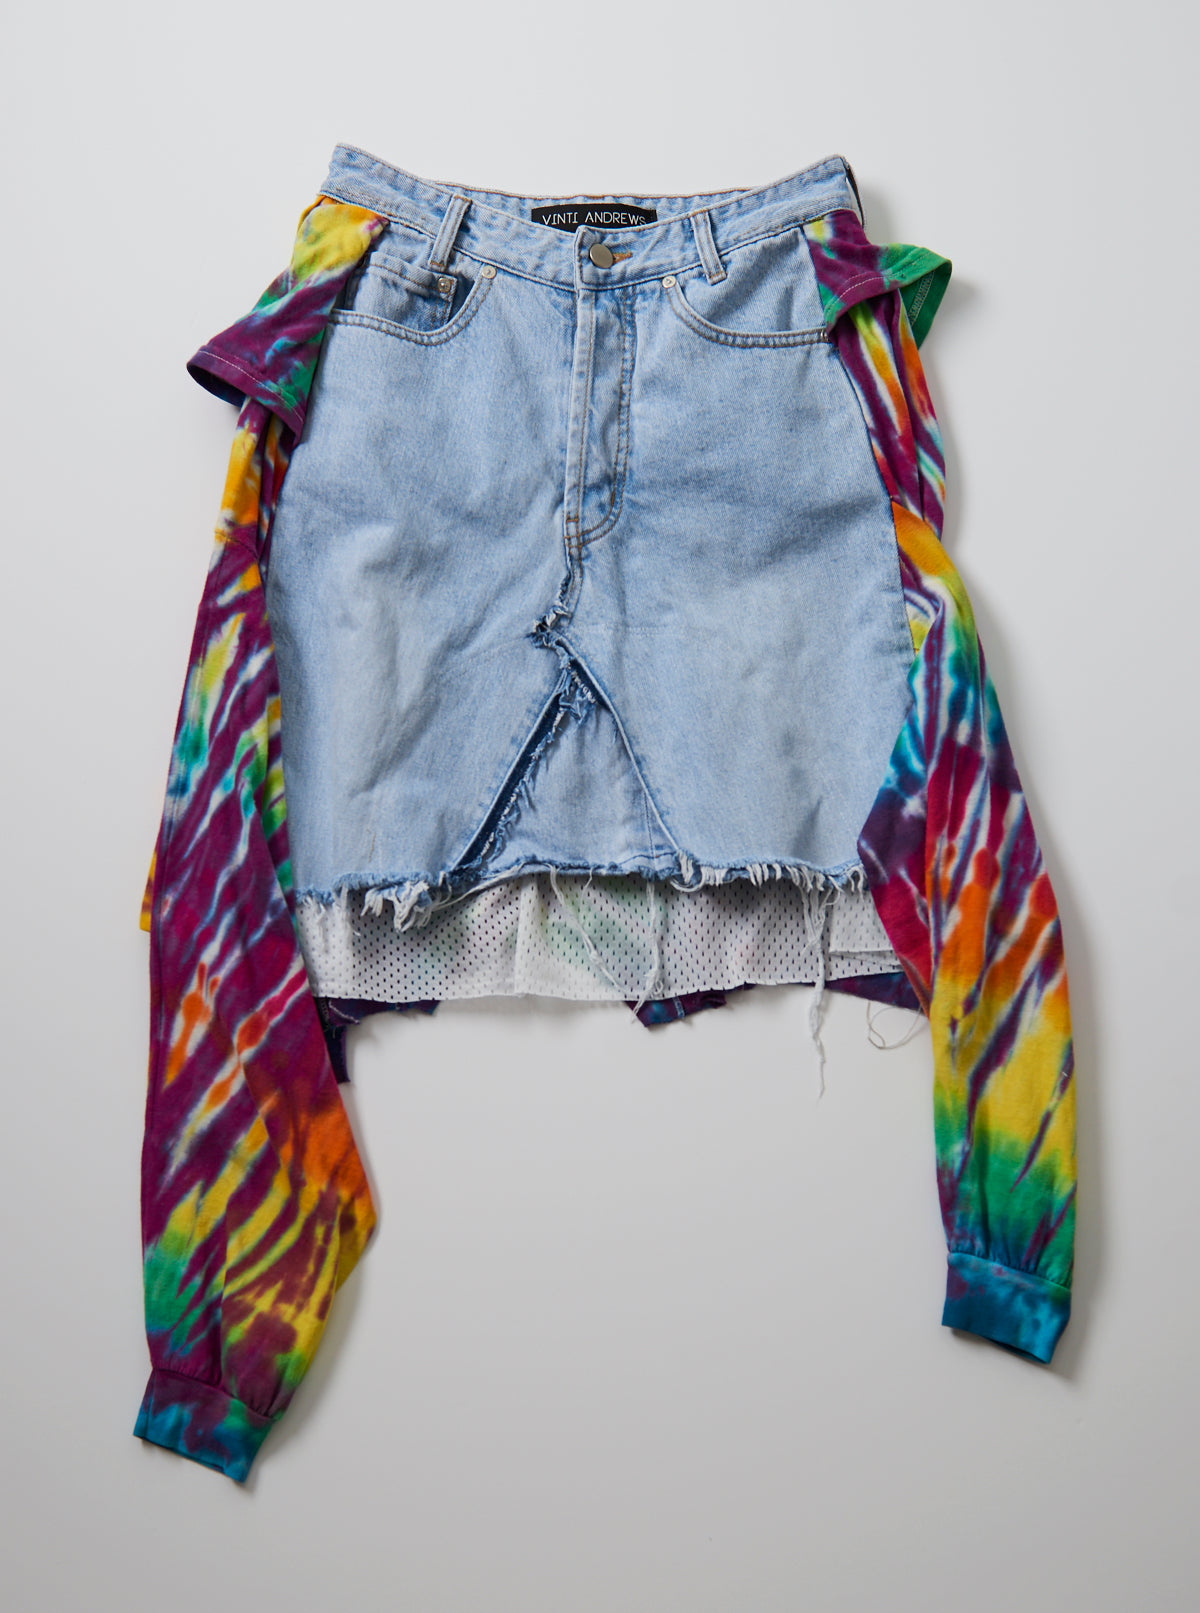 Vinti Andrews Rework Tie Dye T Shirt Jean Skirt